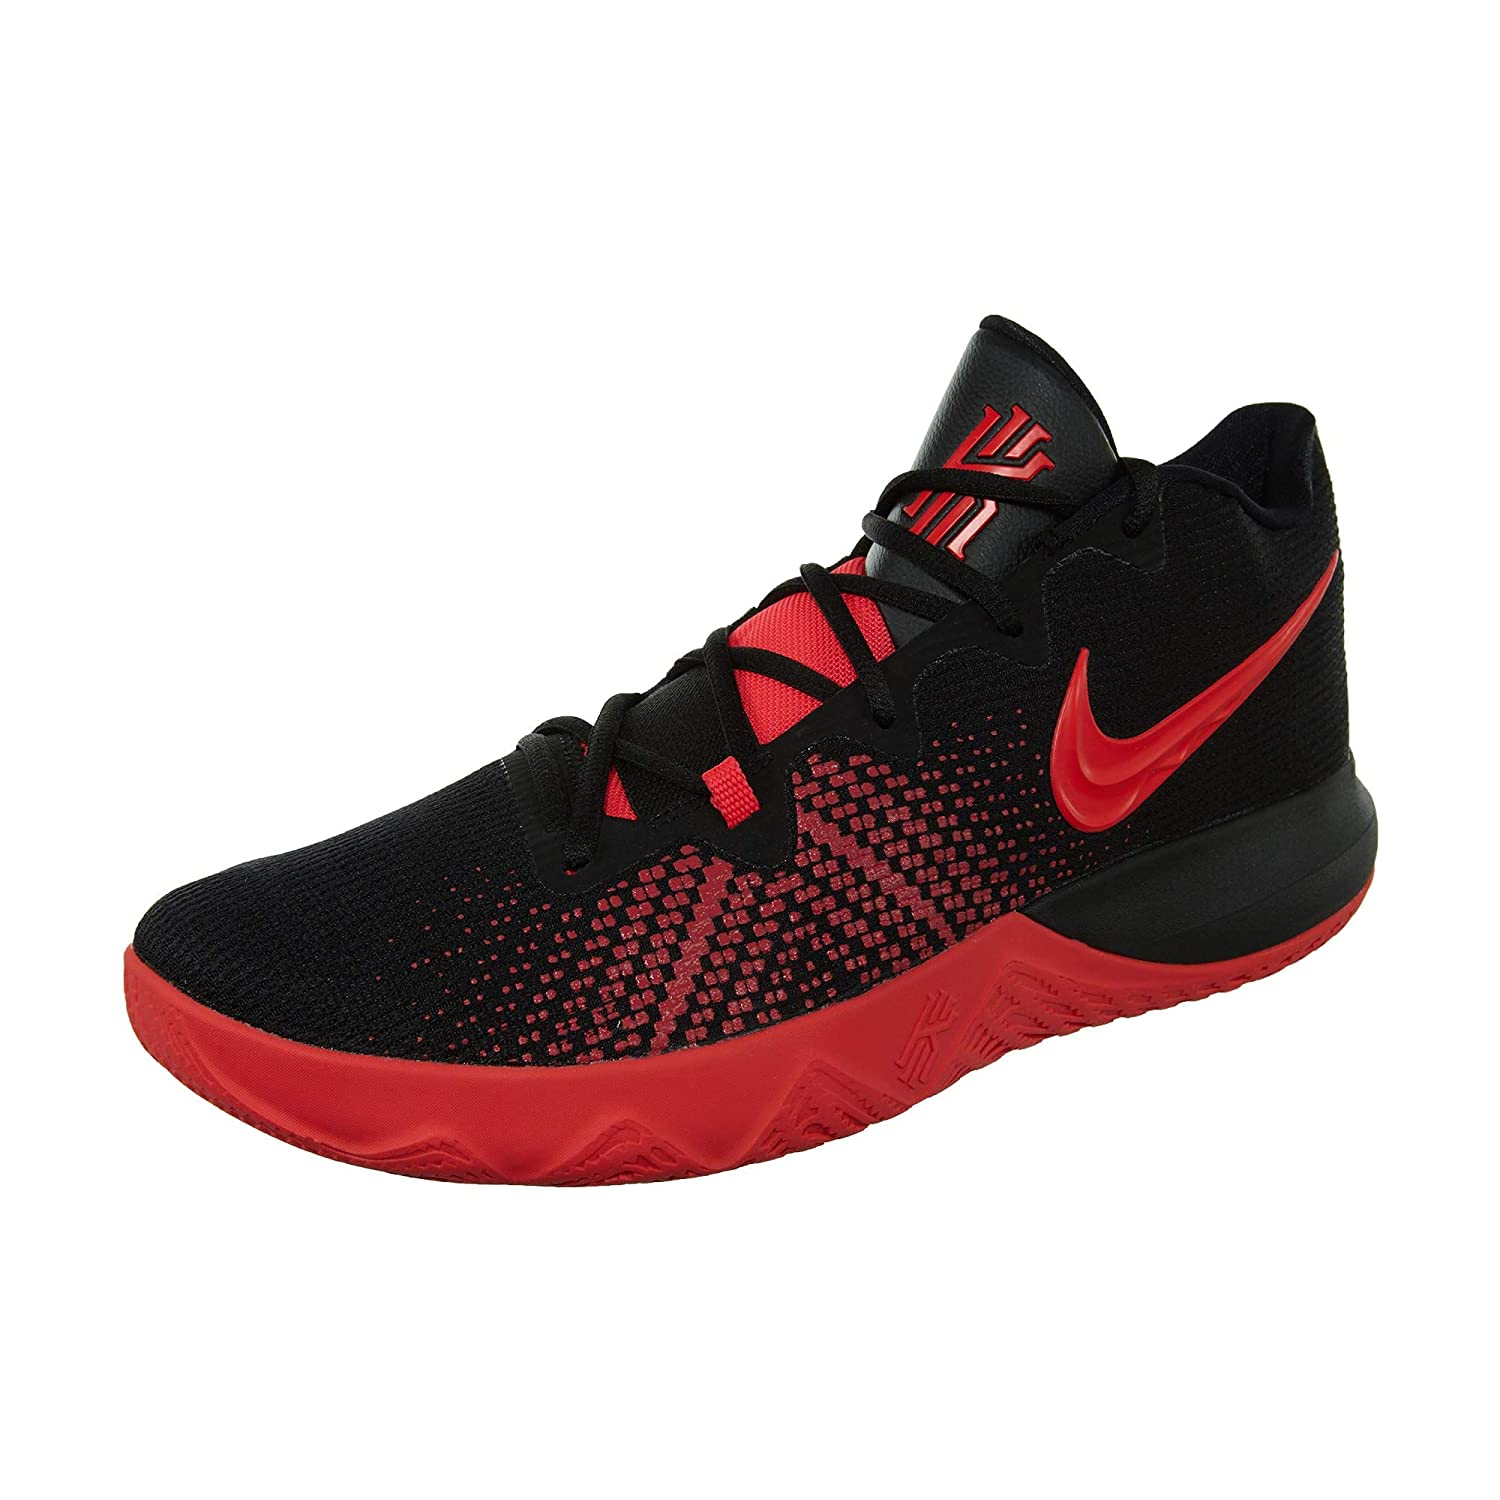 reputable site 50977 5caf5 ... coupon for nike mens kyrie flytrap black red orbit basketball shoes  aa7071 006 buy online at